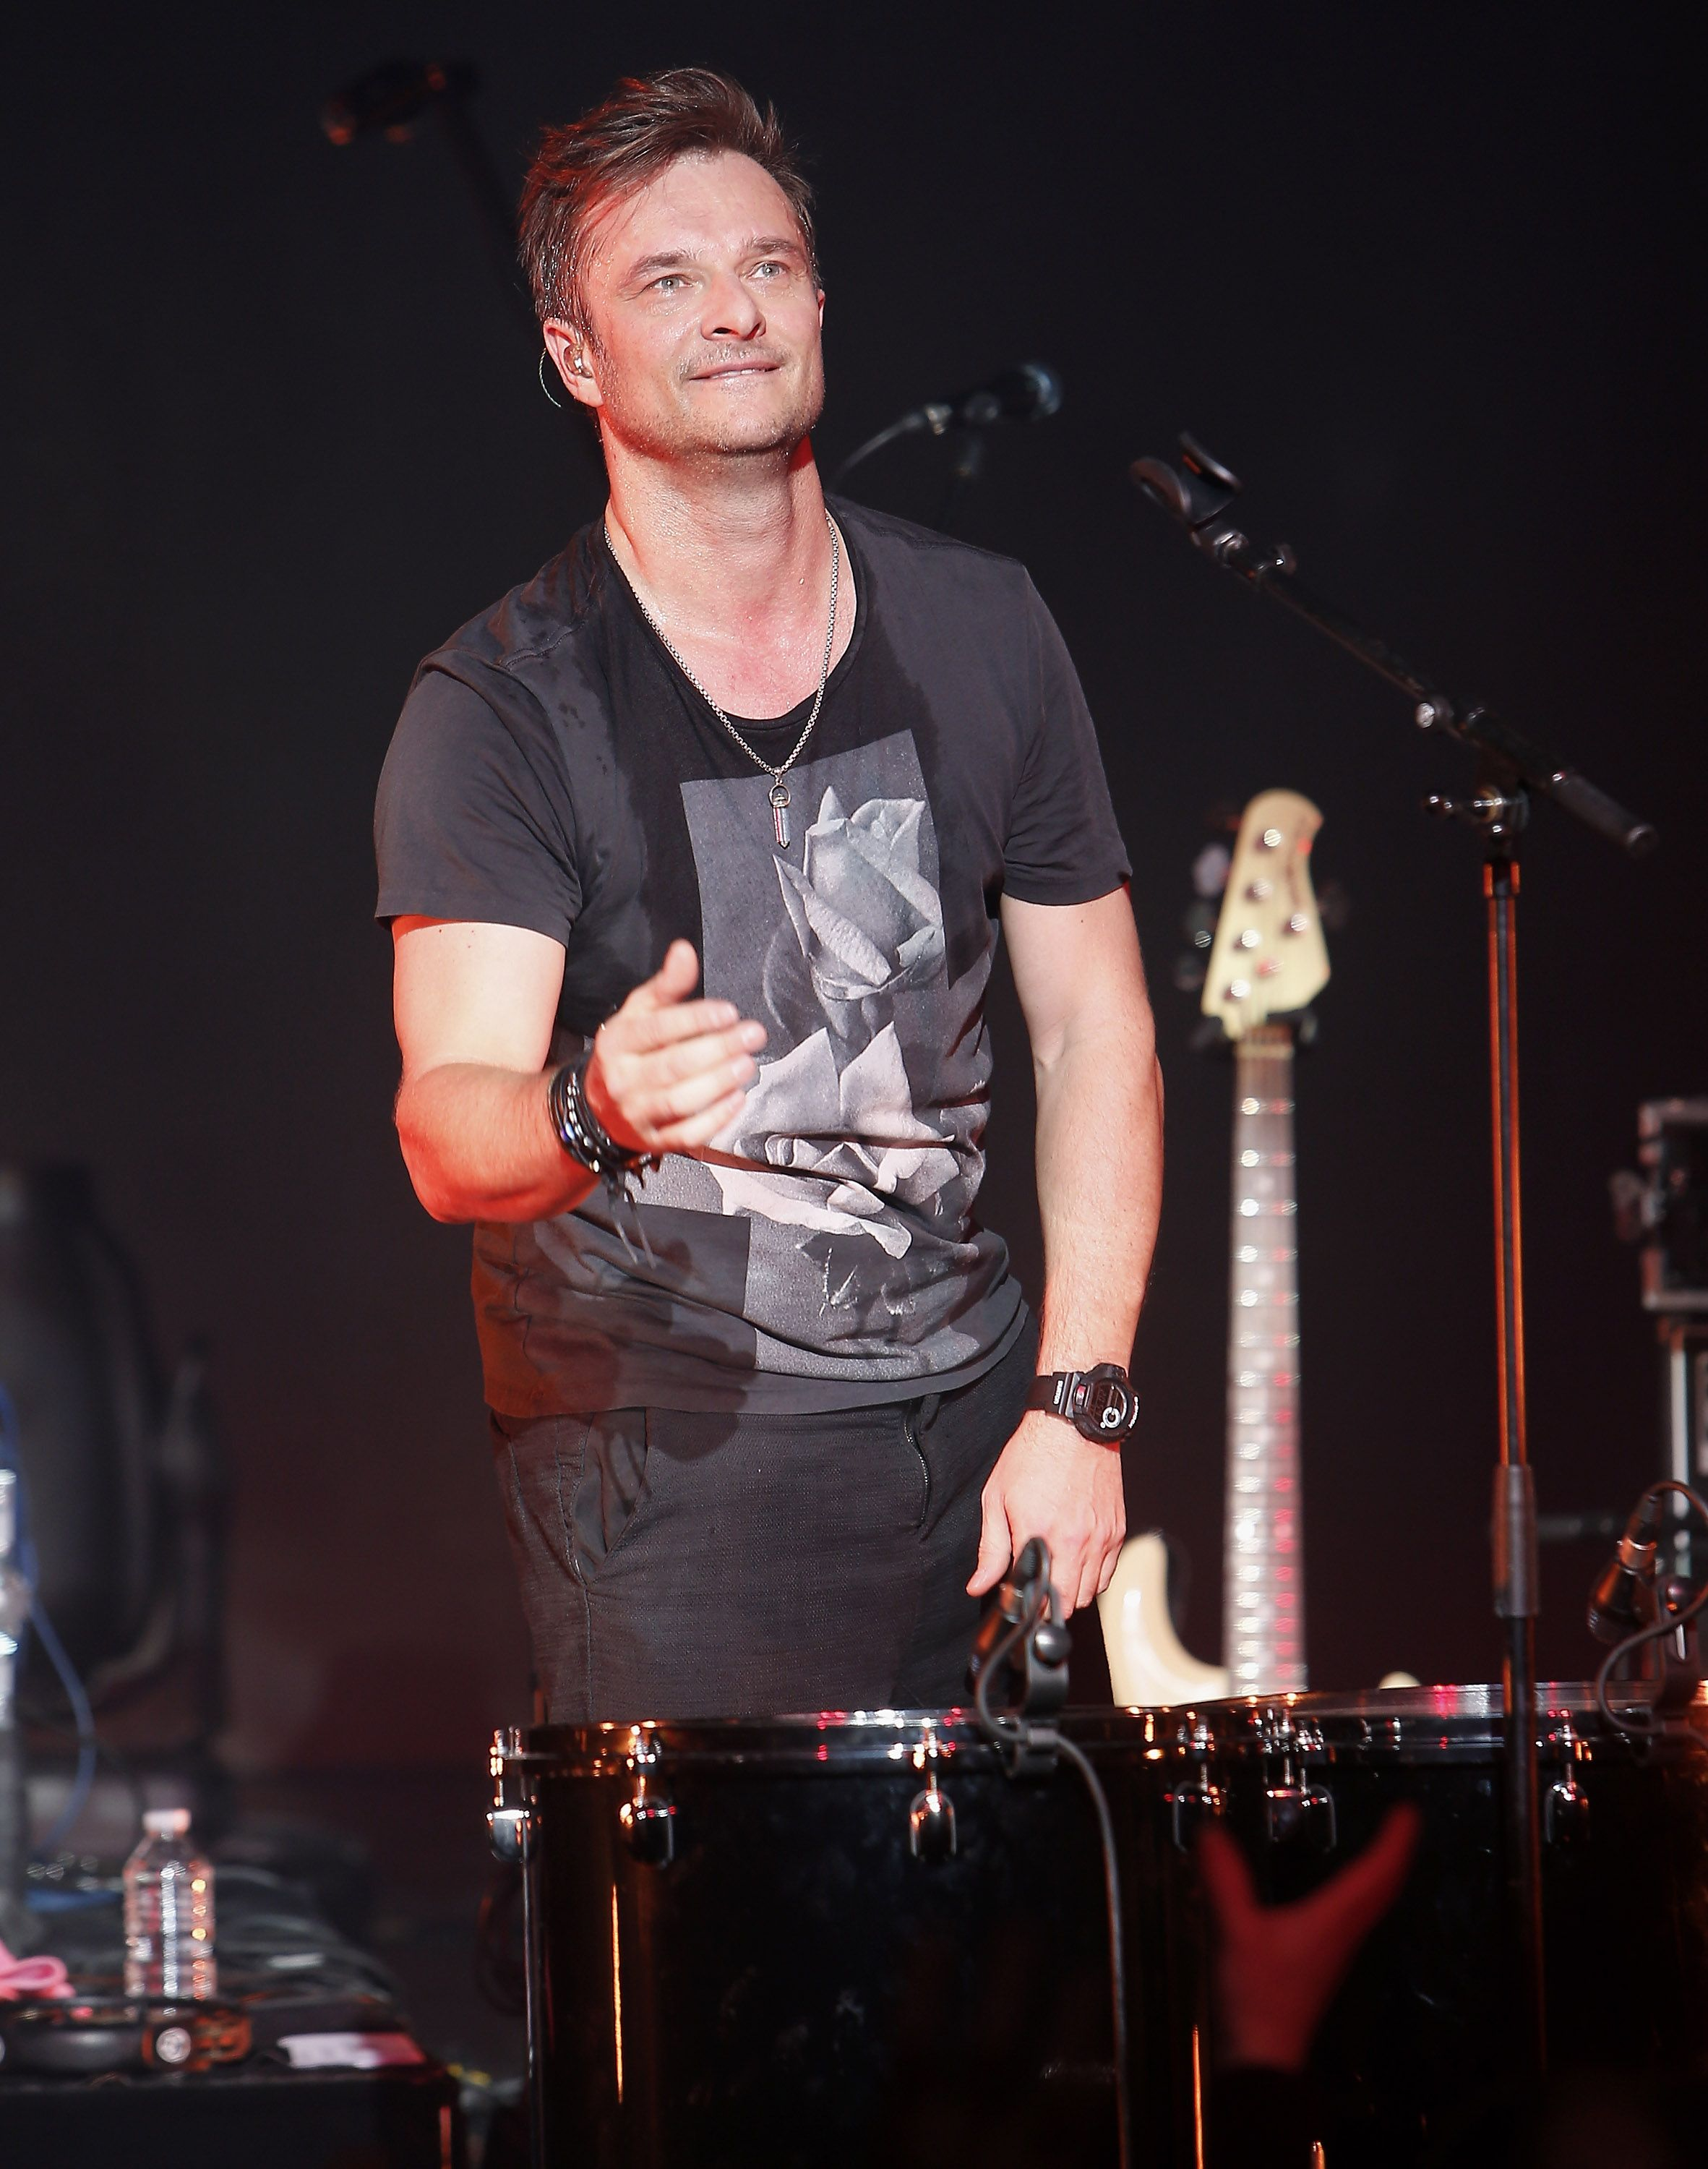 David Hallyday et se produisent en direct au Théâtre Comedia à Paris , France. | Photo : Getty Images